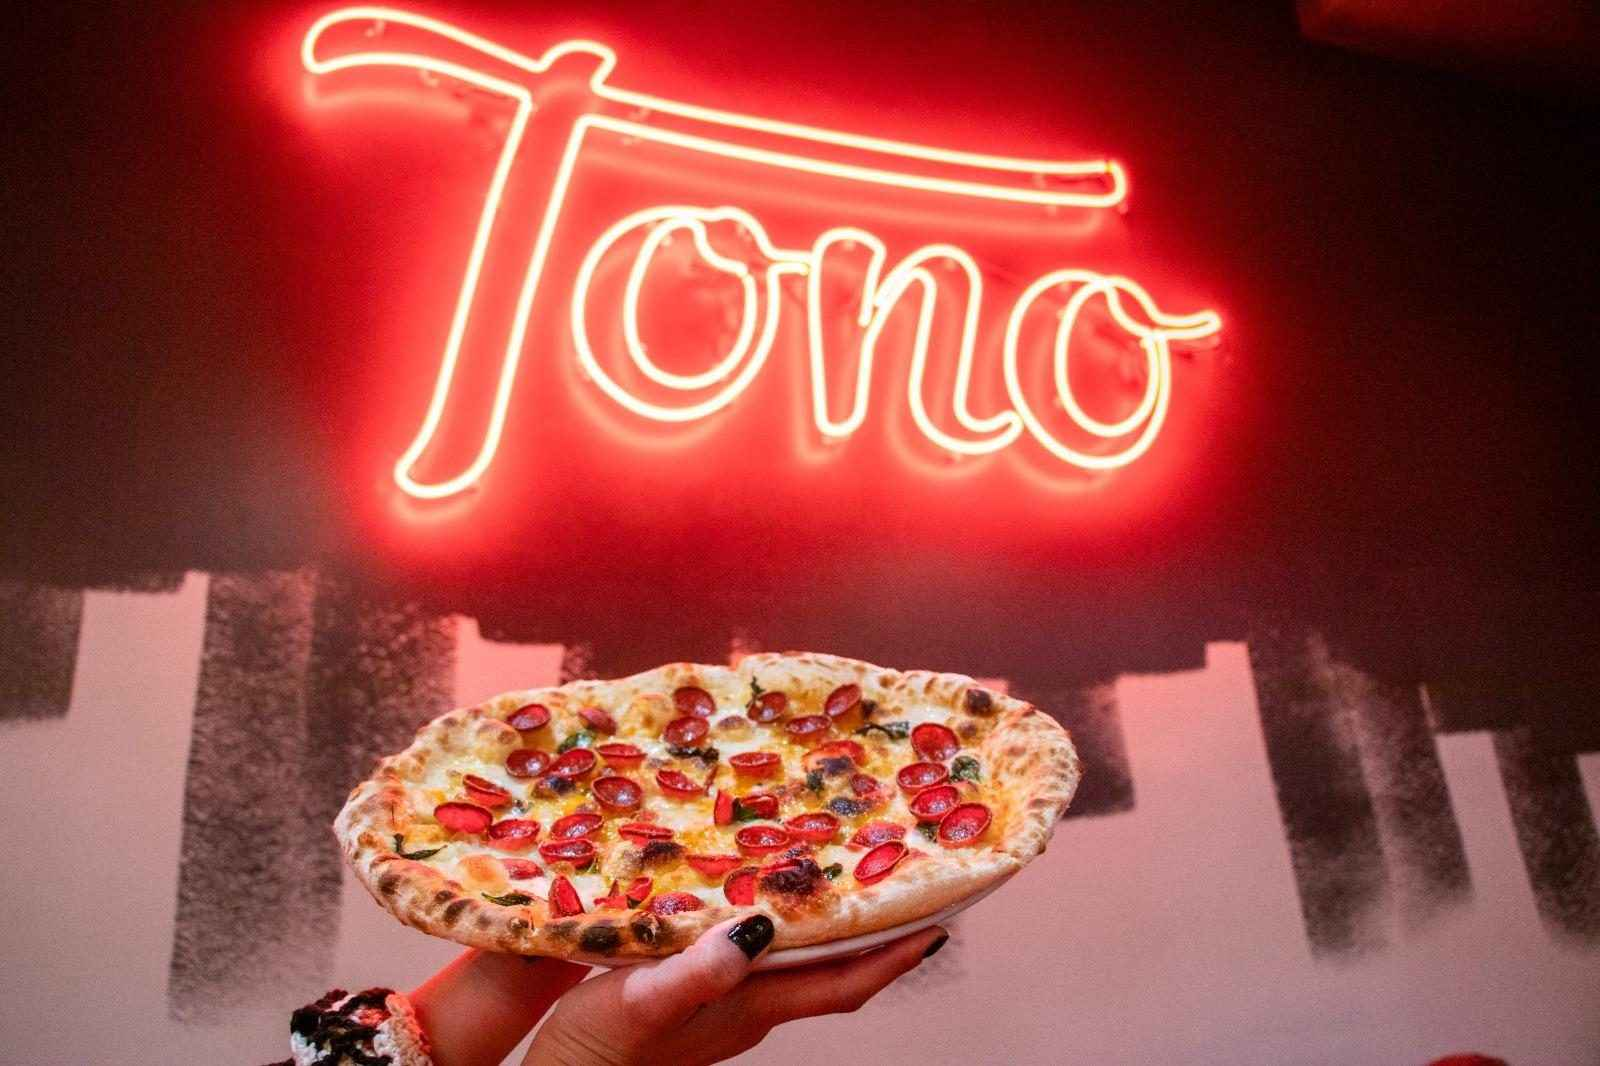 A person holding up a pizza in front of a neon sign that says